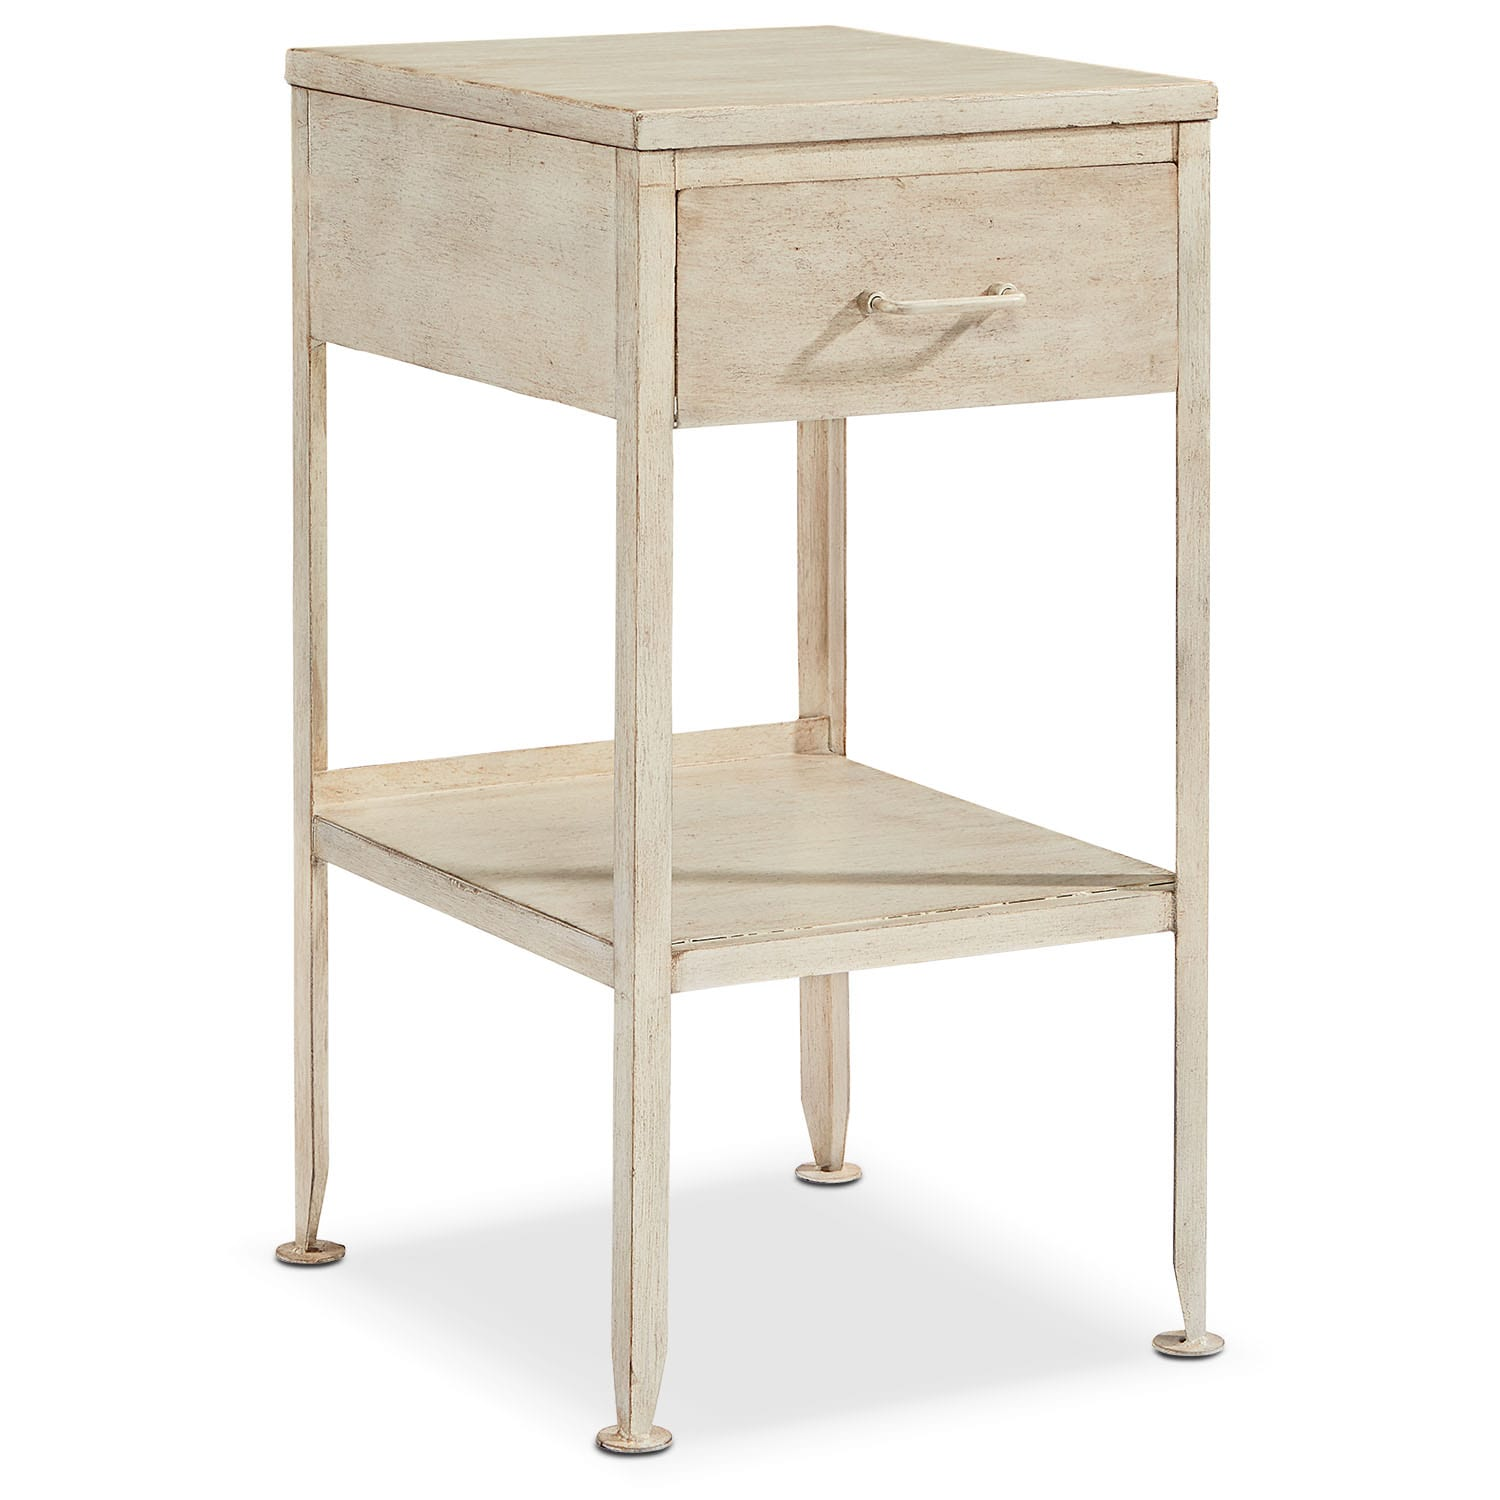 Metal Utility Side Table - Antique White